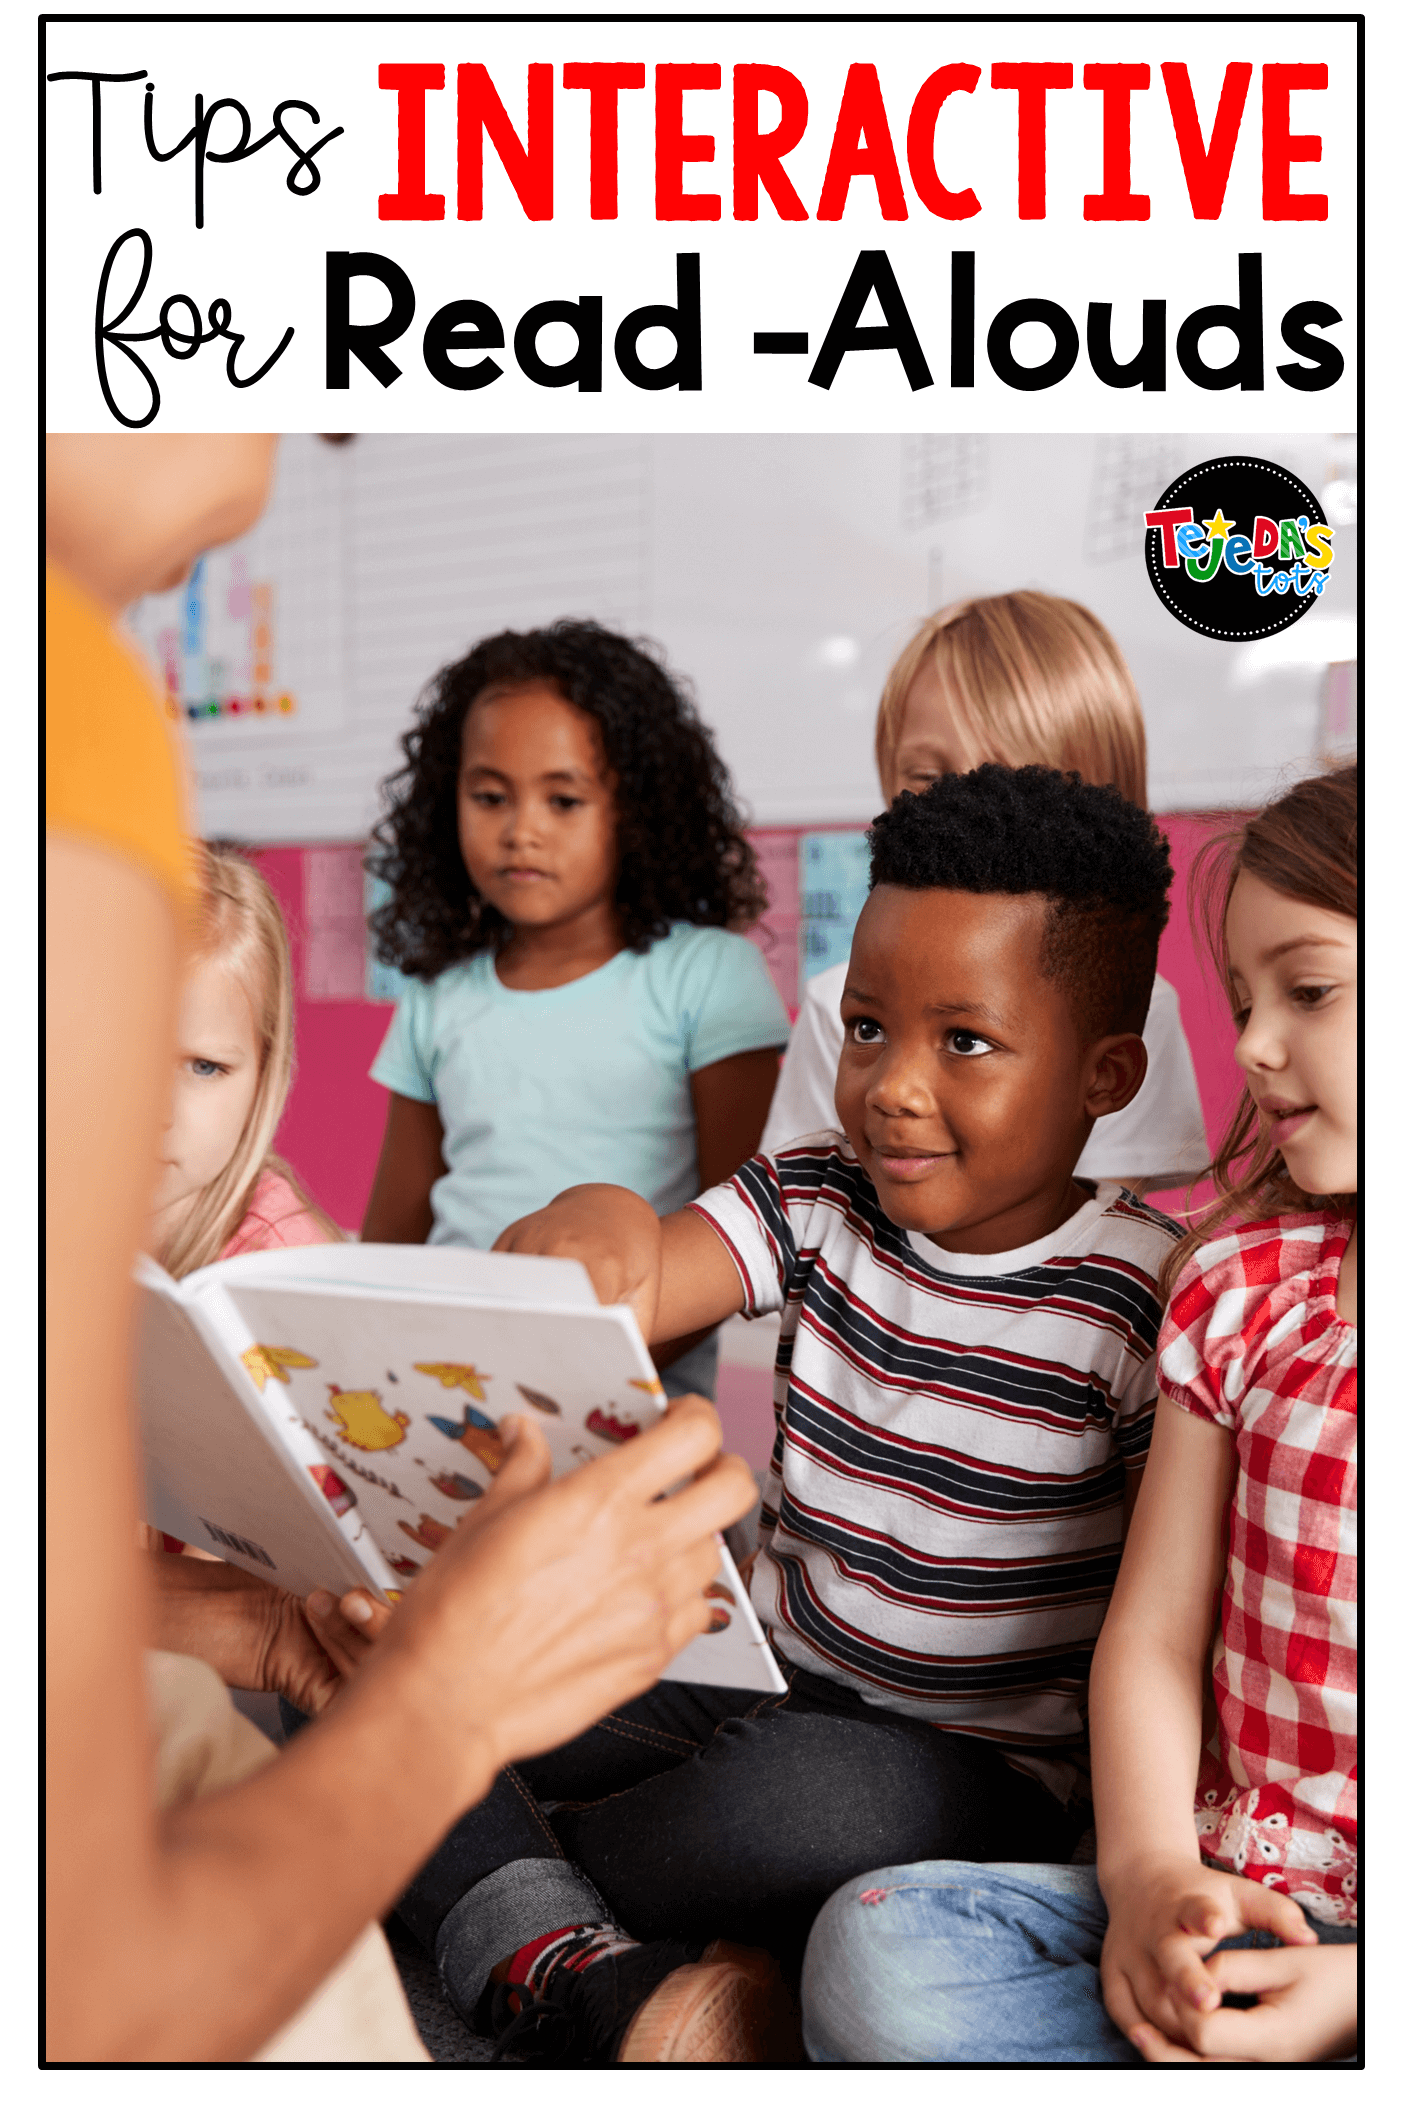 How to Use Interactive Read-Alouds in the Classroom